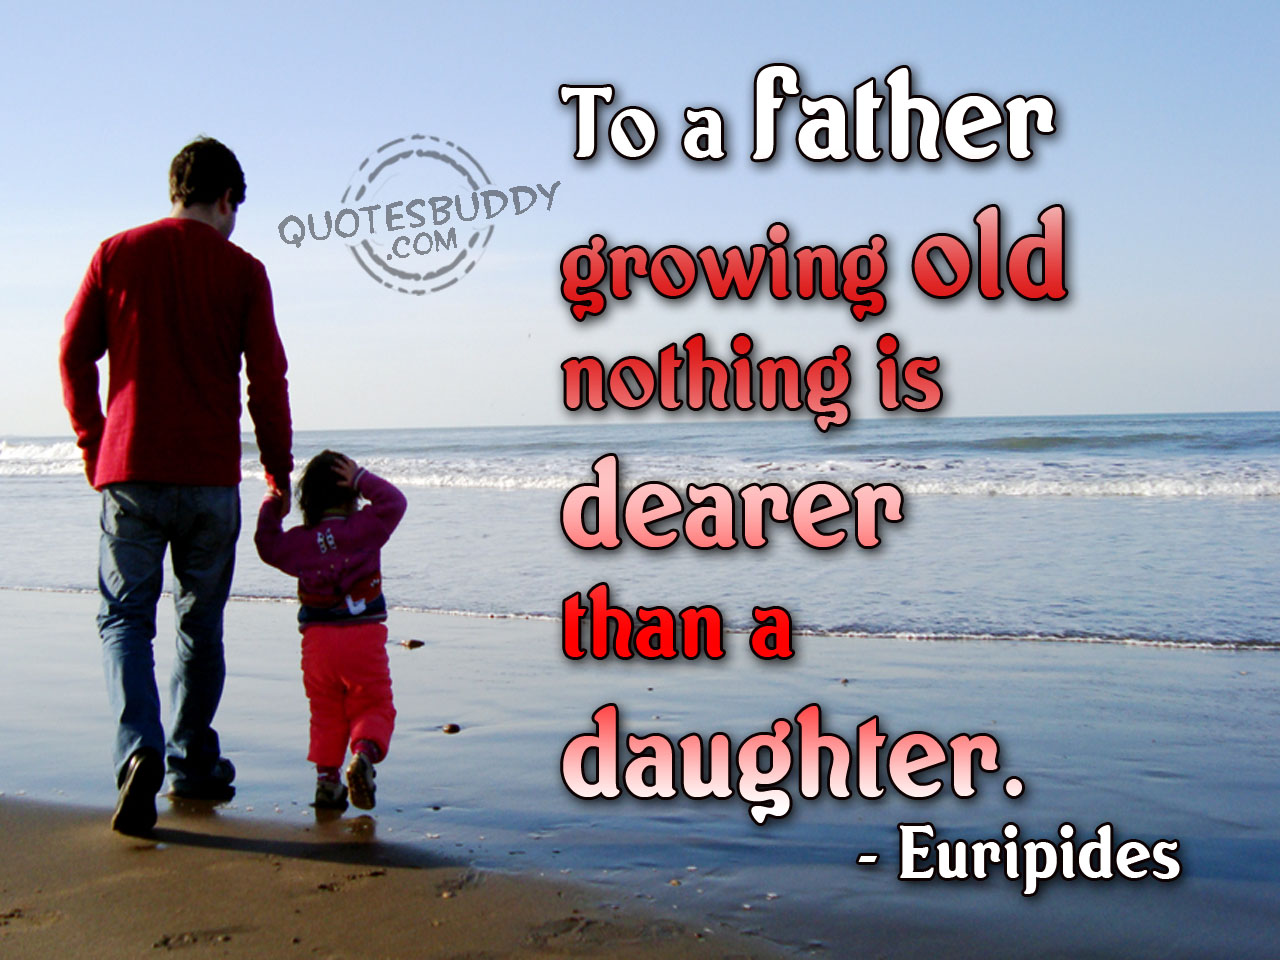 Inspirational quotes for dads from daughters quotesgram for Quotes for a father